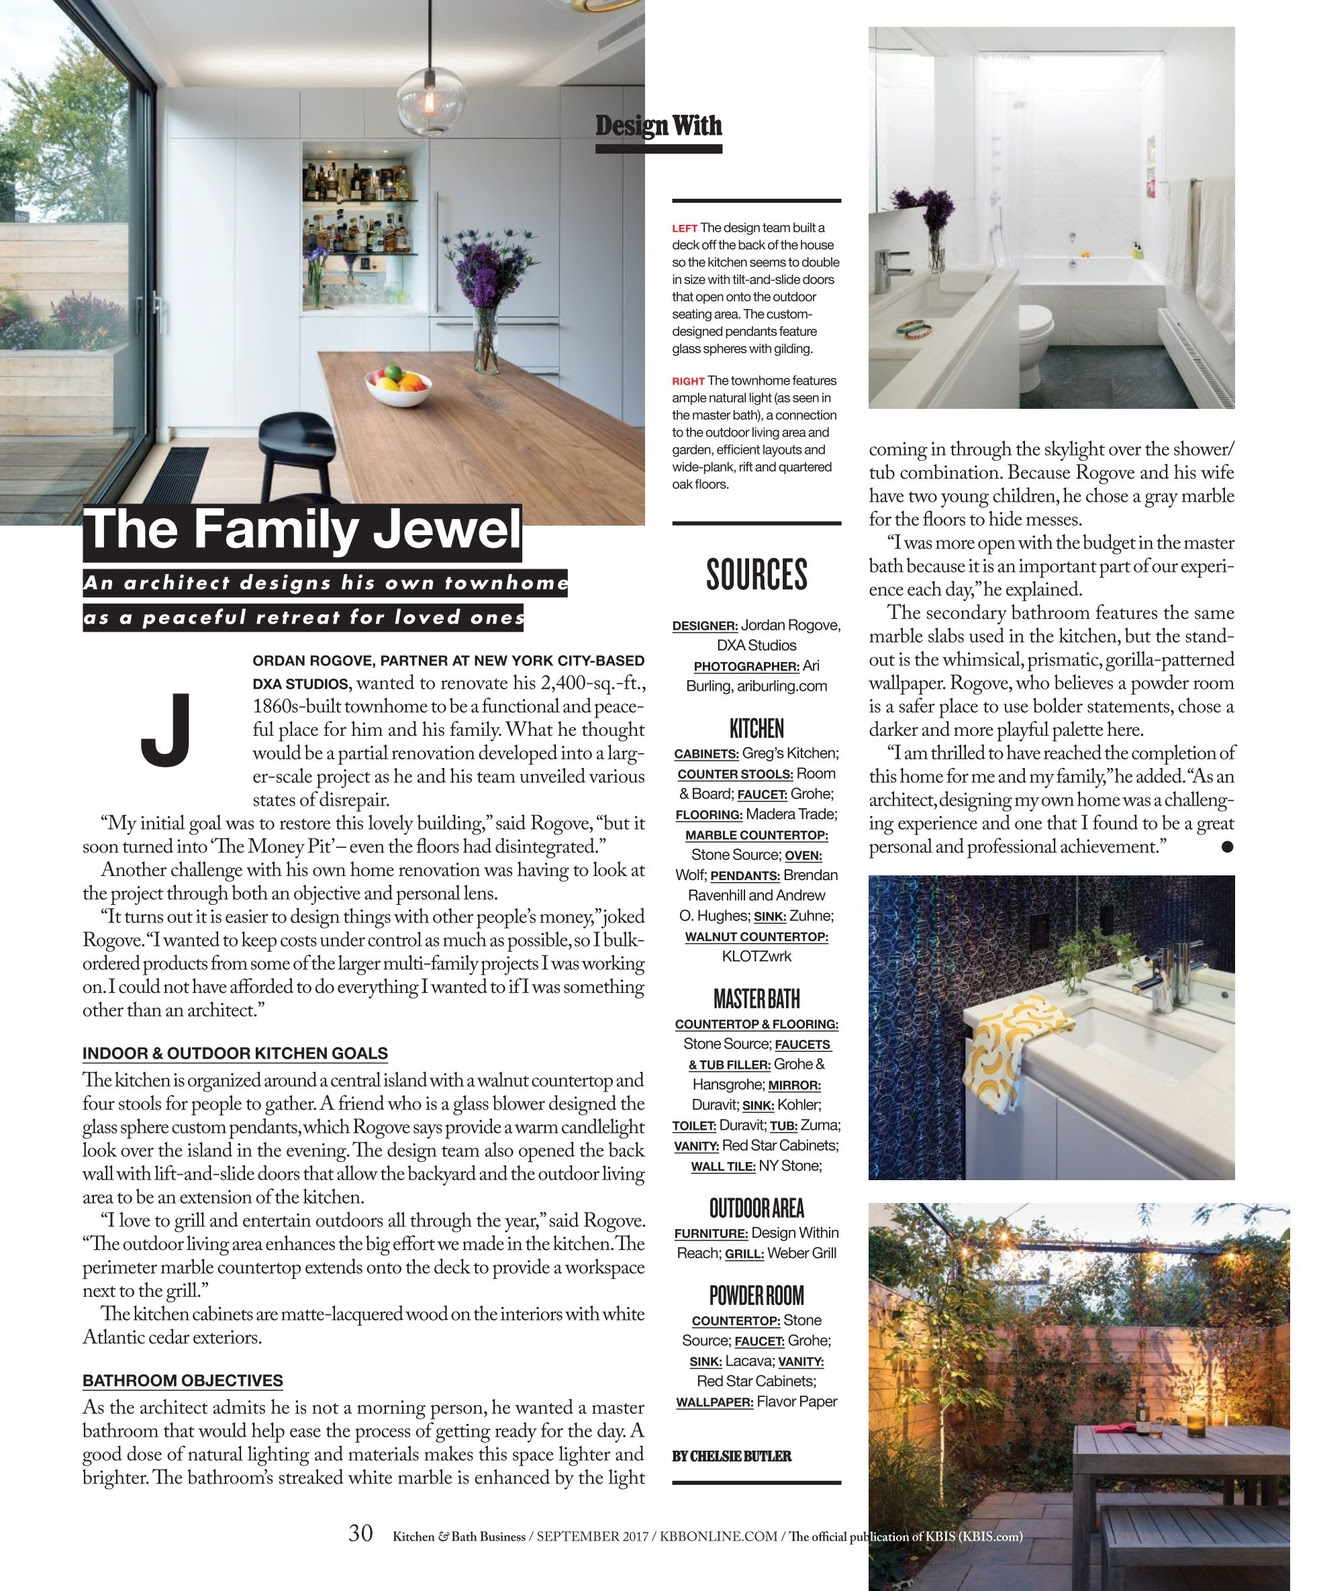 Kitchen Bath Business September 2017